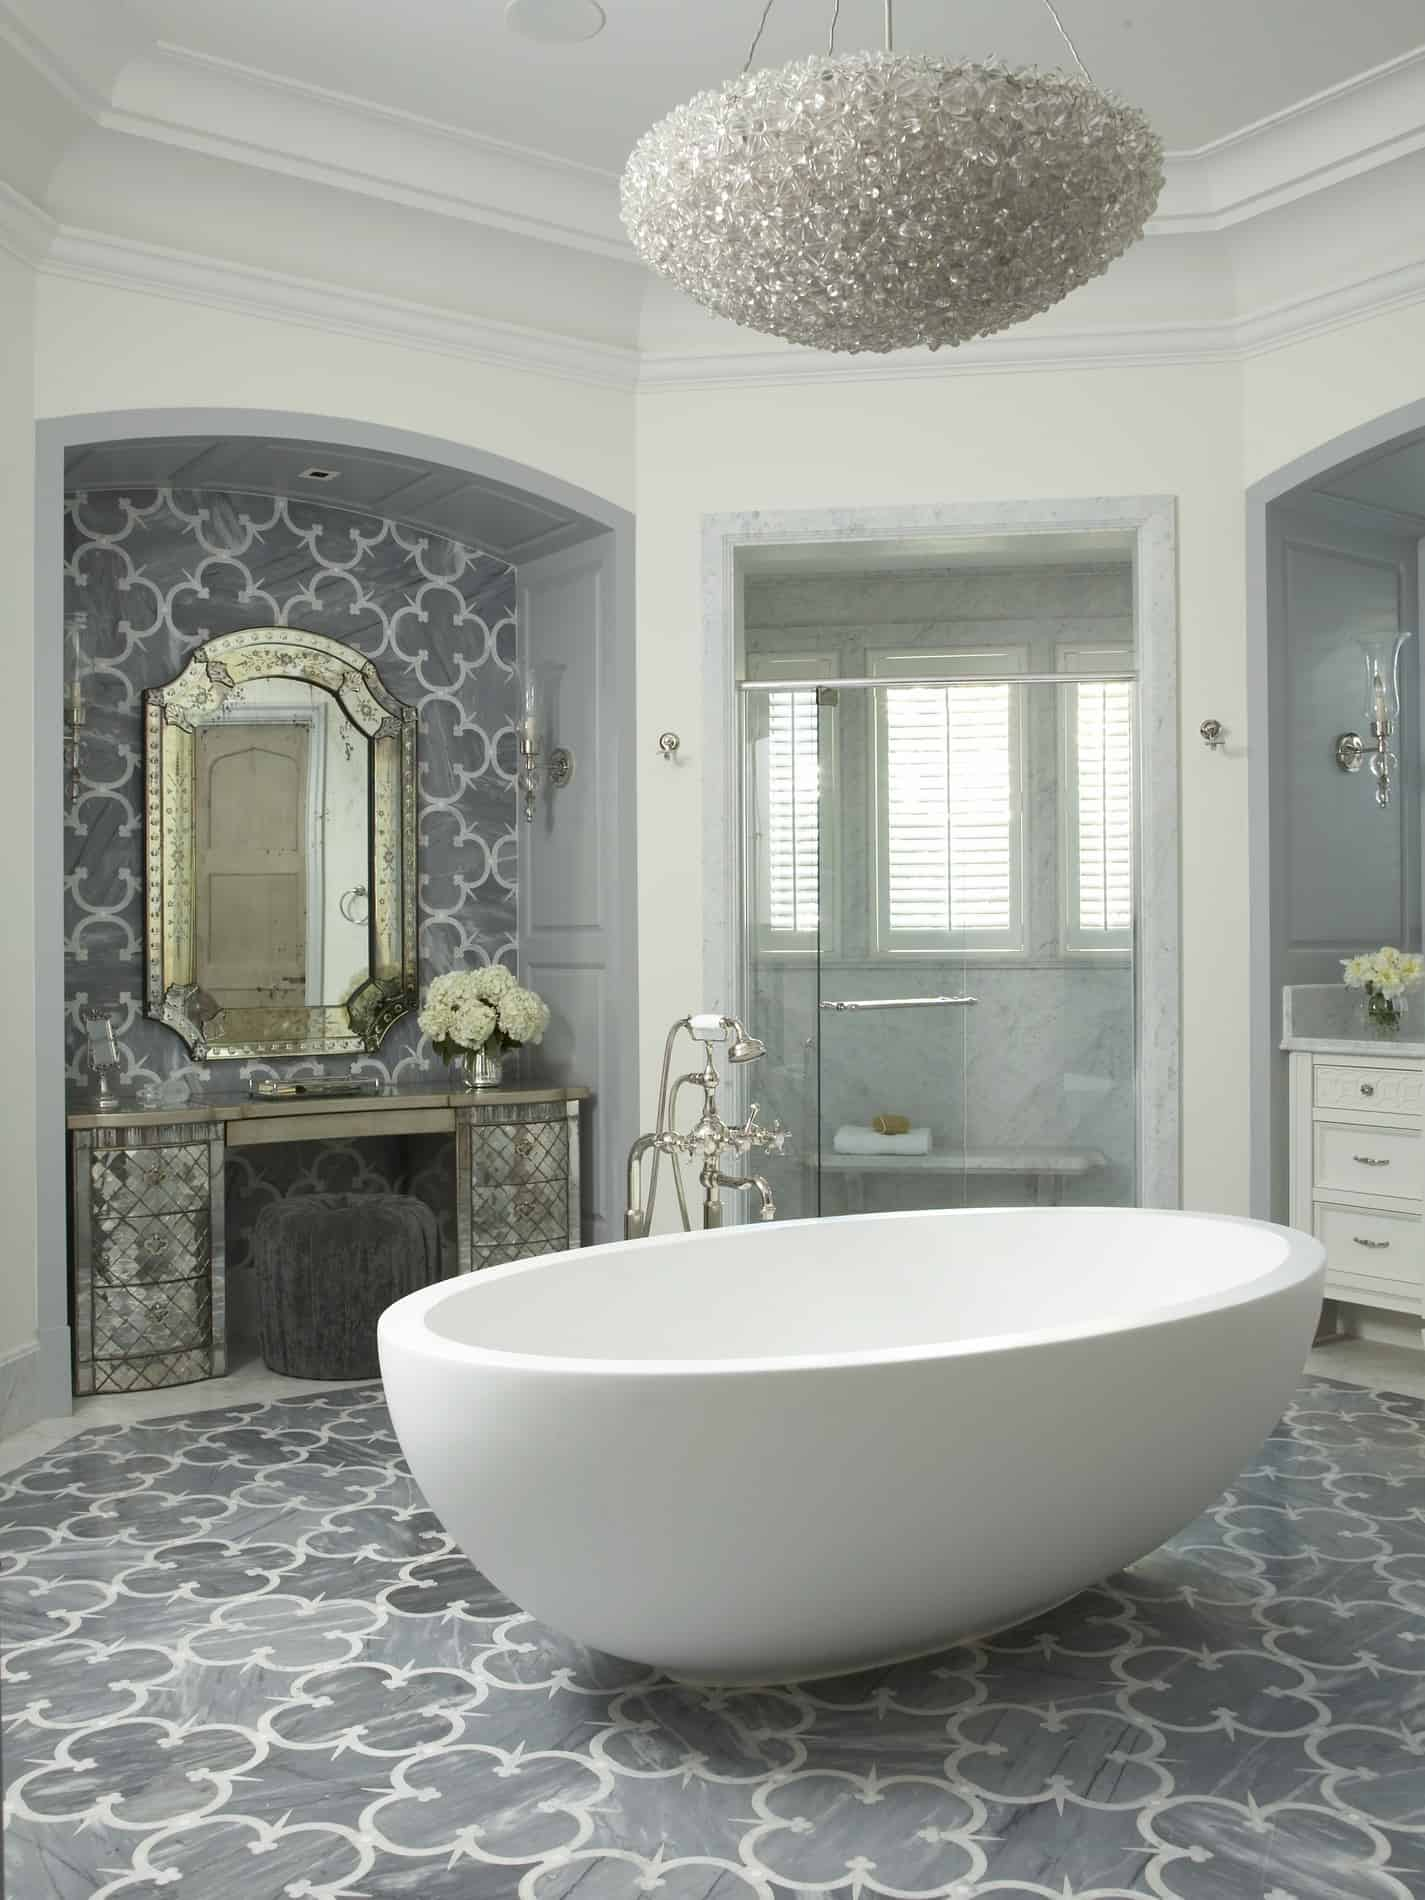 stand alone tub with monochromatic 11 Modern Bathrooms That Will Inspire Your Creativity